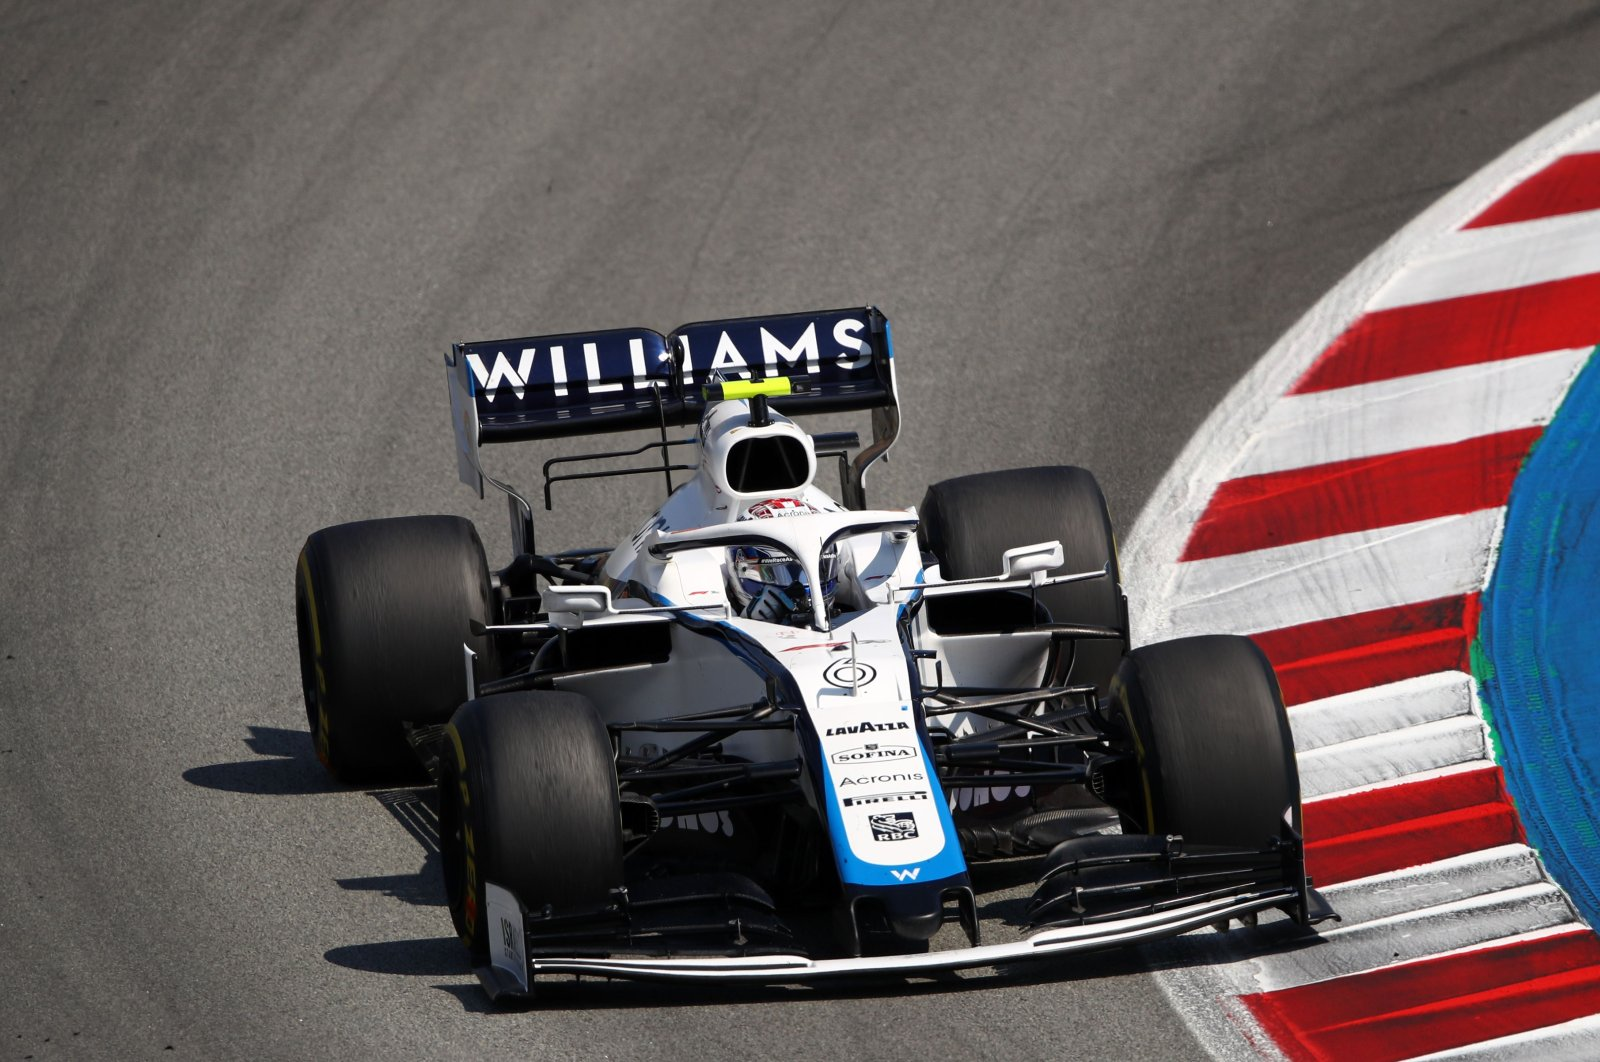 Williams' driver Nicholas Latifi steers his car during the Spanish Grand Prix race in Montmelo, Spain, Aug. 16, 2020. (AFP Photo)